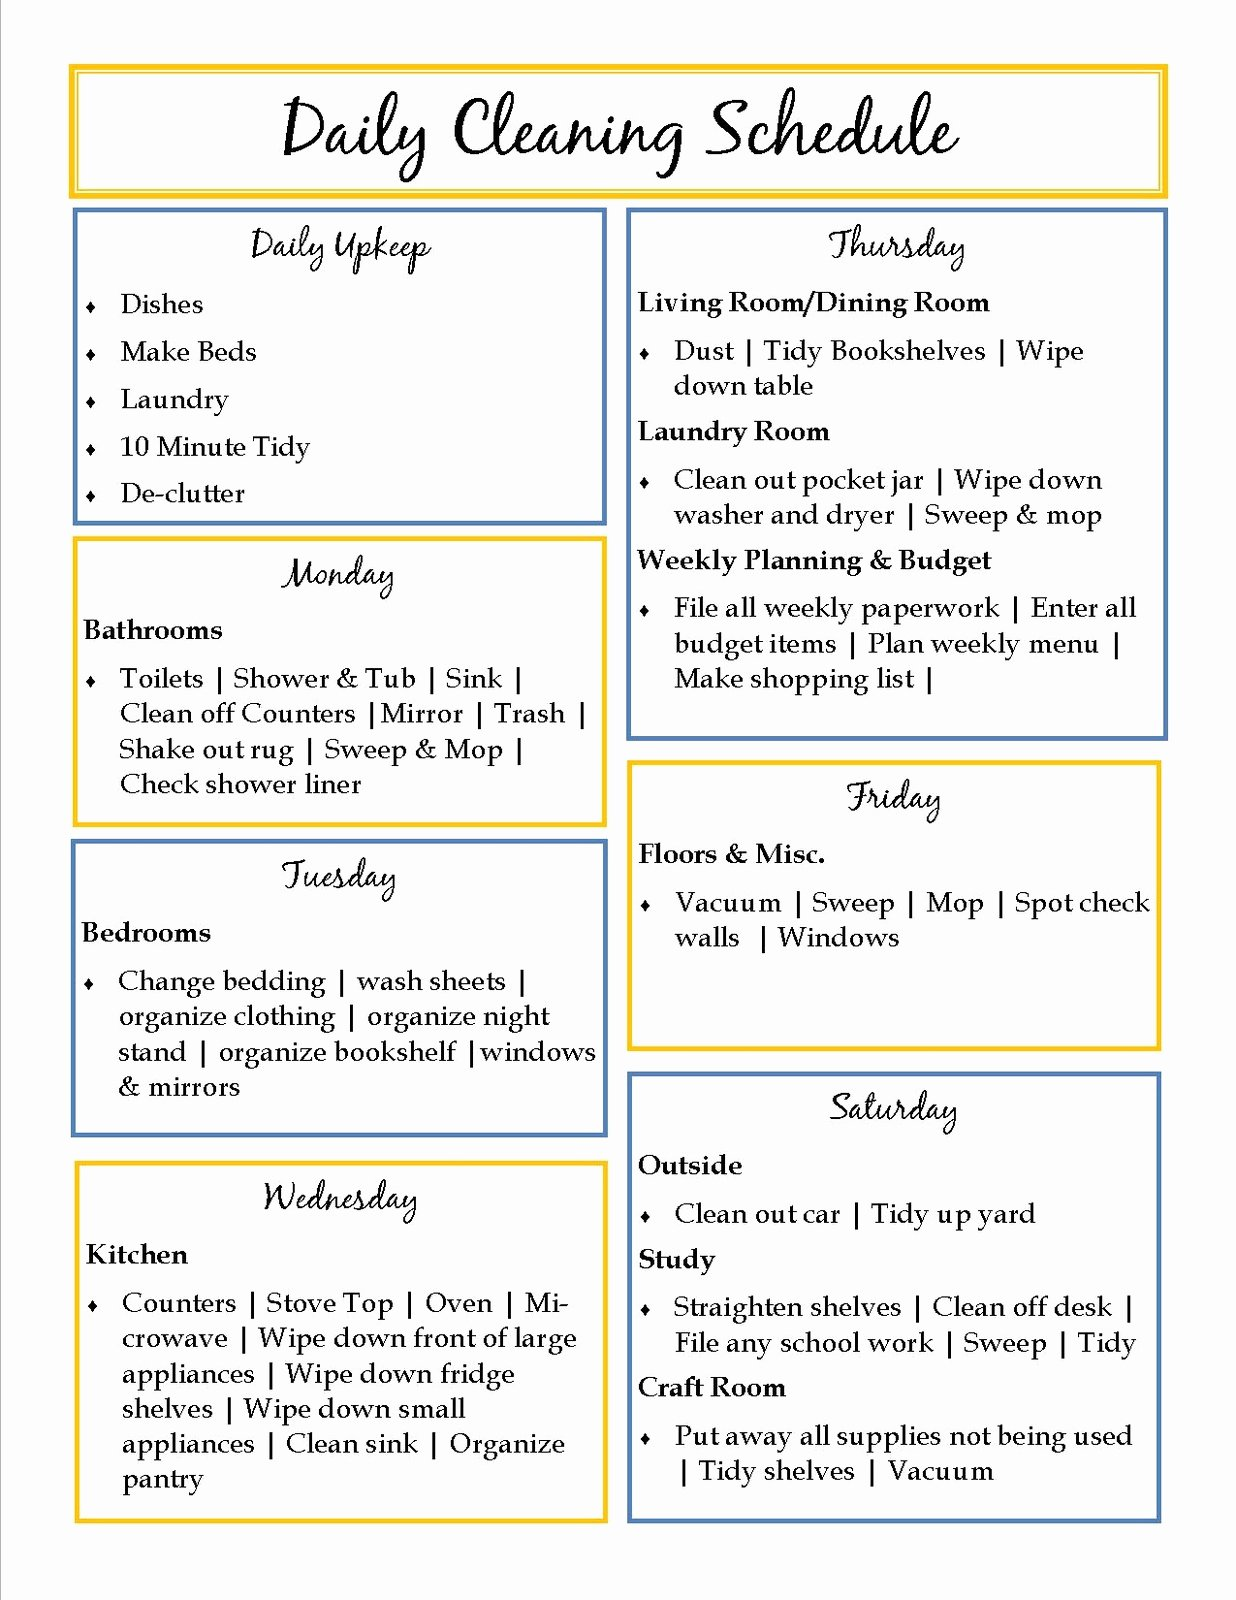 House Cleaning Schedule Template Inspirational 40 Helpful House Cleaning Checklists for You